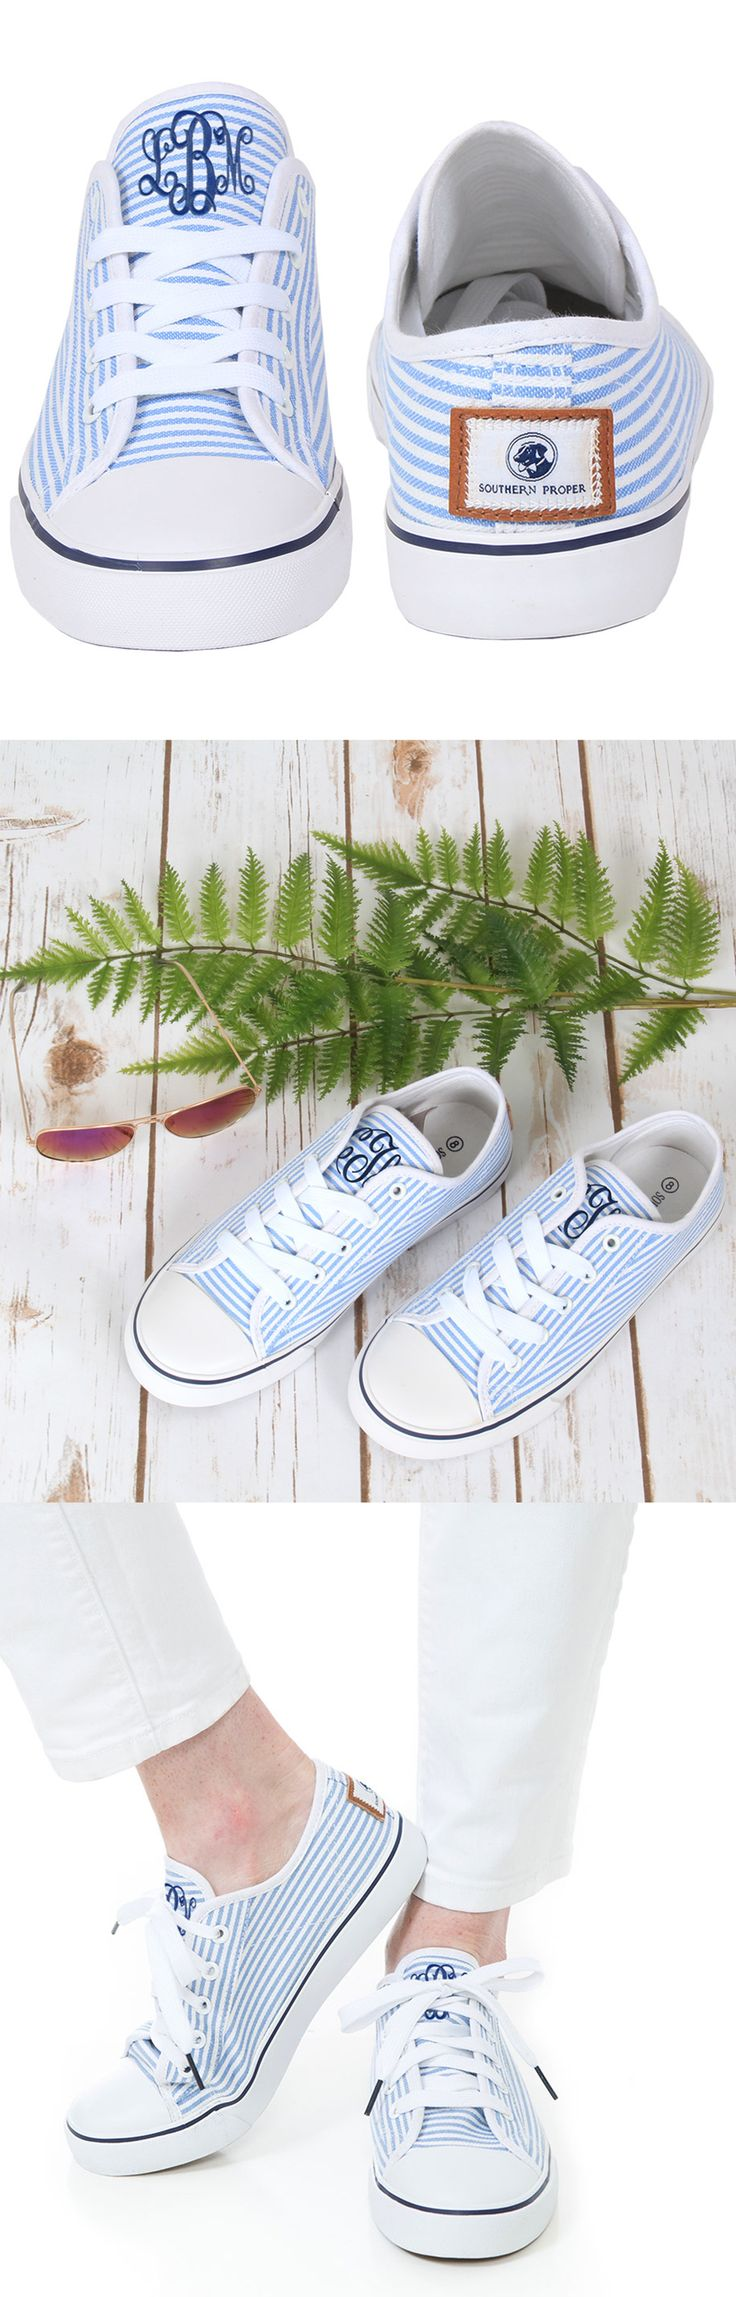 Show off your preppy side with these seersucker Monogrammed Allison Lace Ups! #SoutherProper #marleylilly #monogrammed